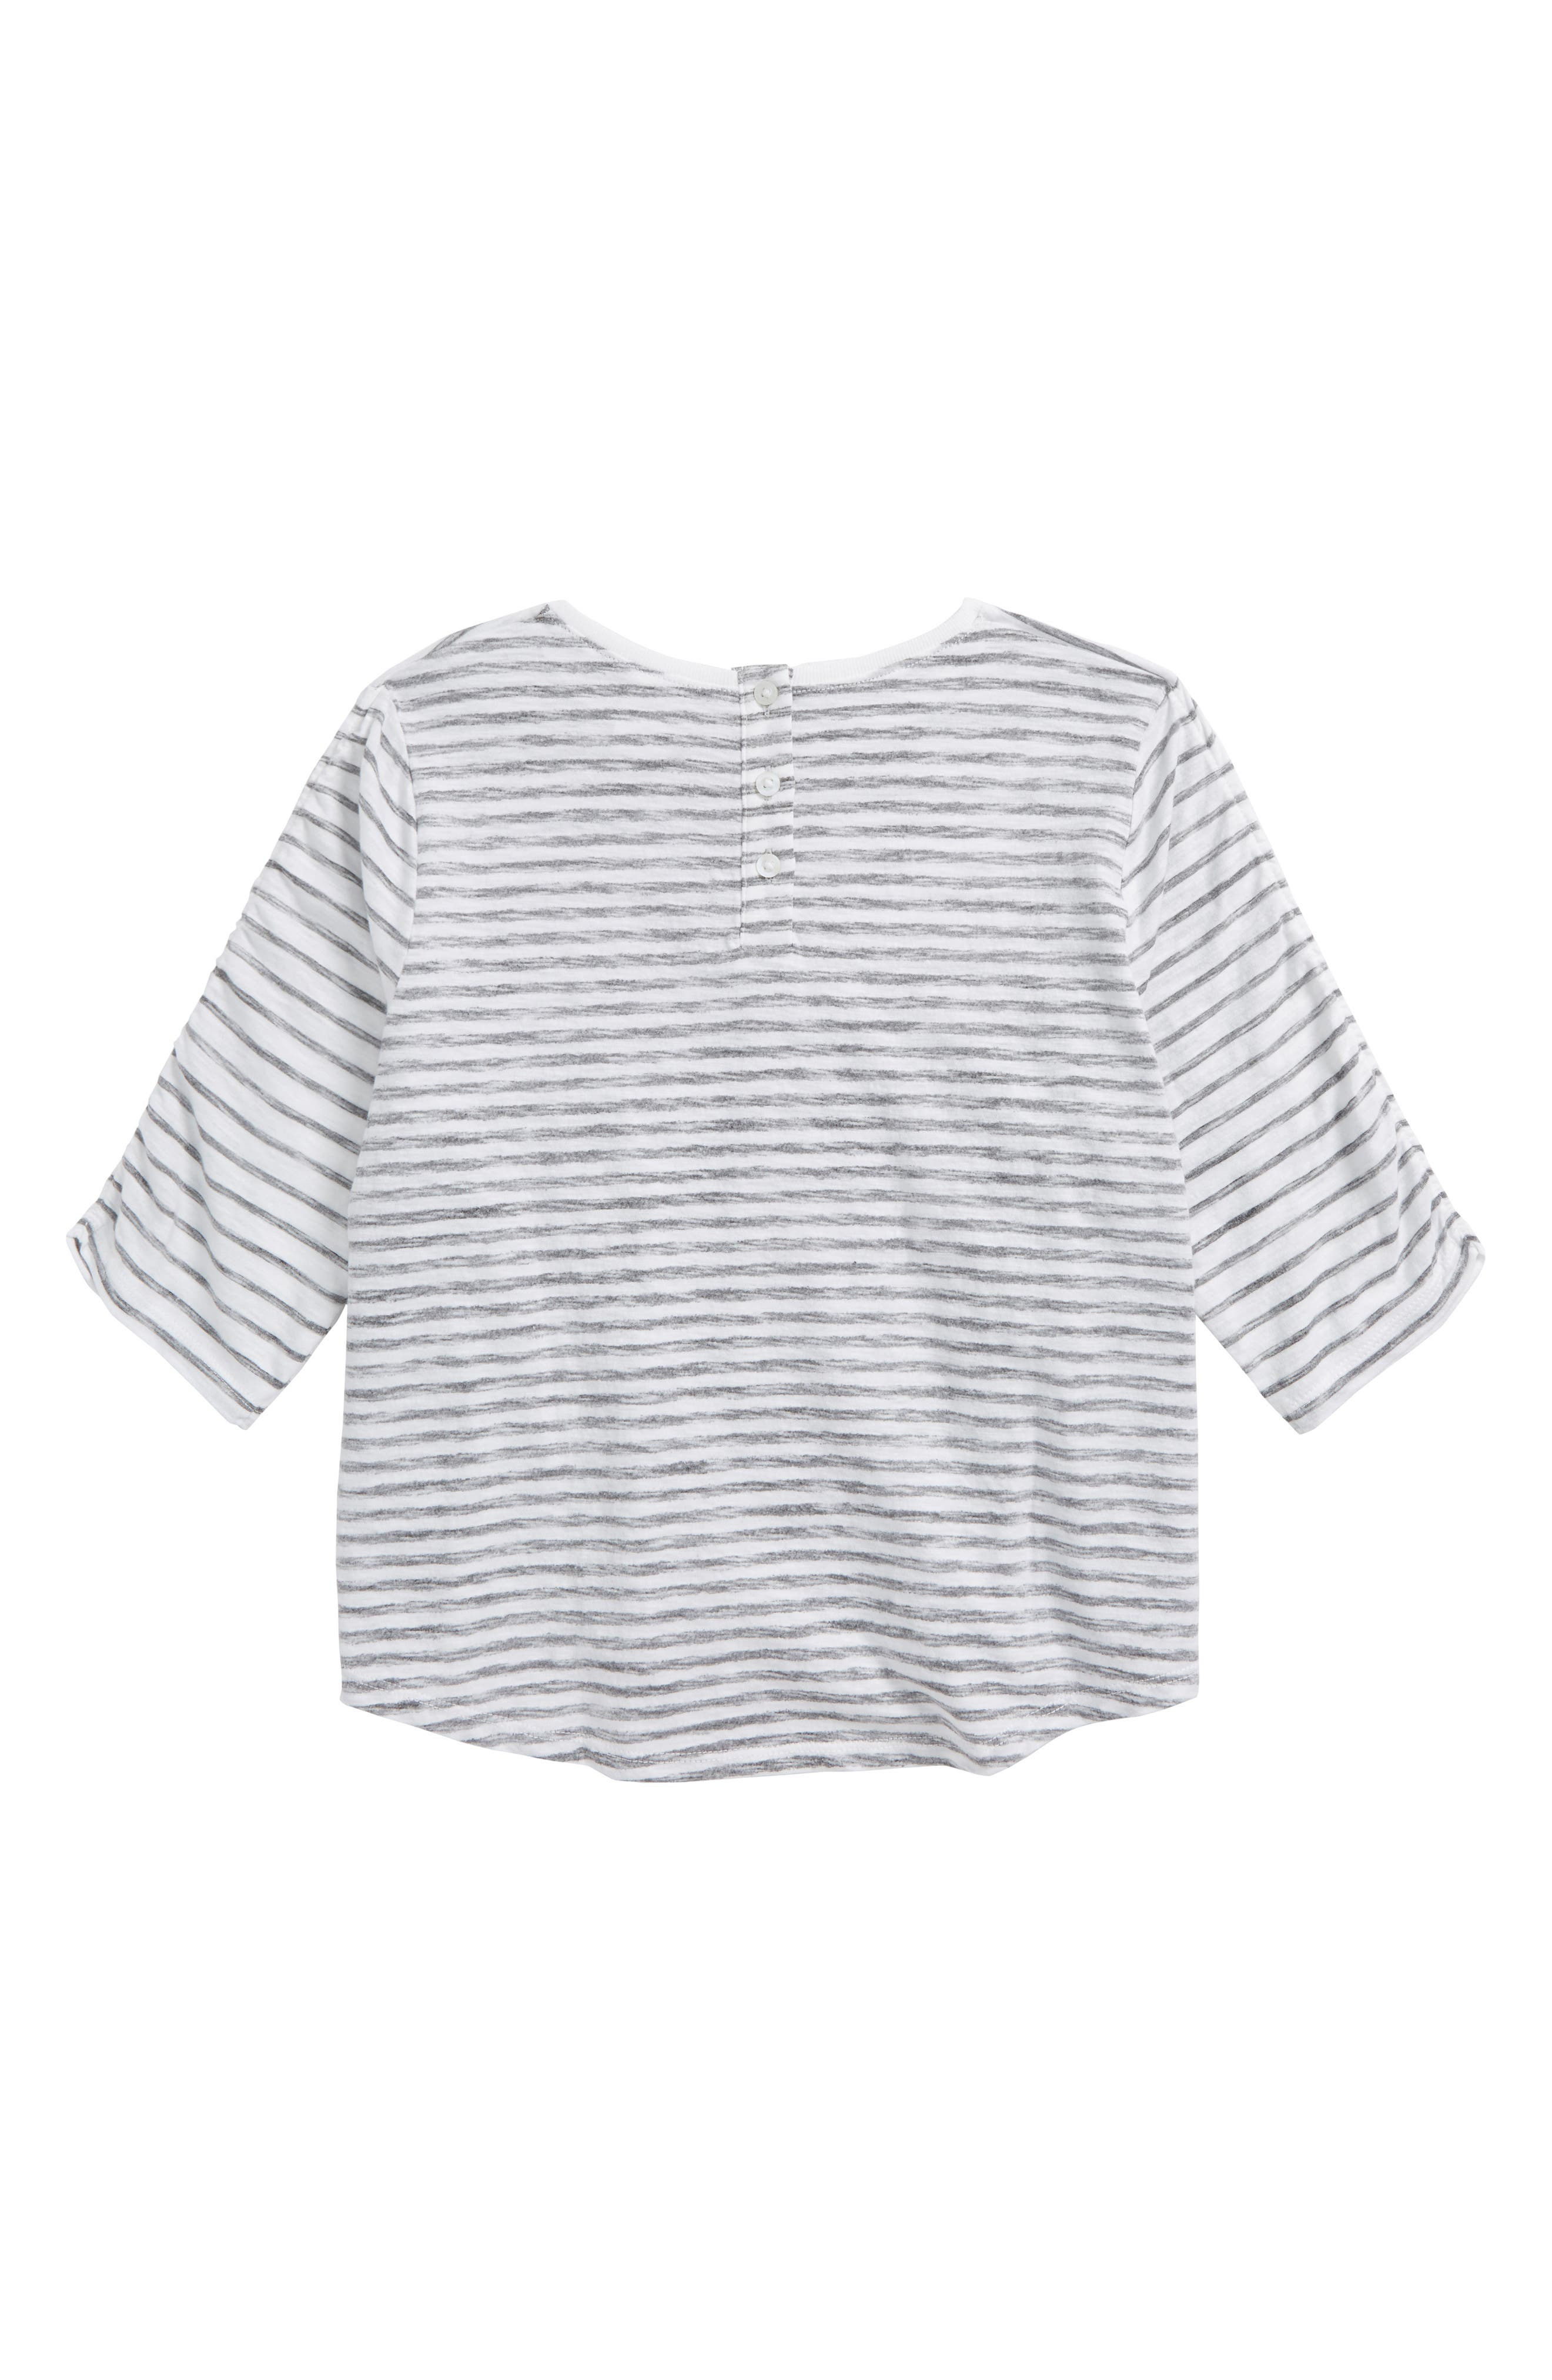 Ruched Sleeve Tee,                             Alternate thumbnail 2, color,                             White- Black Stripe